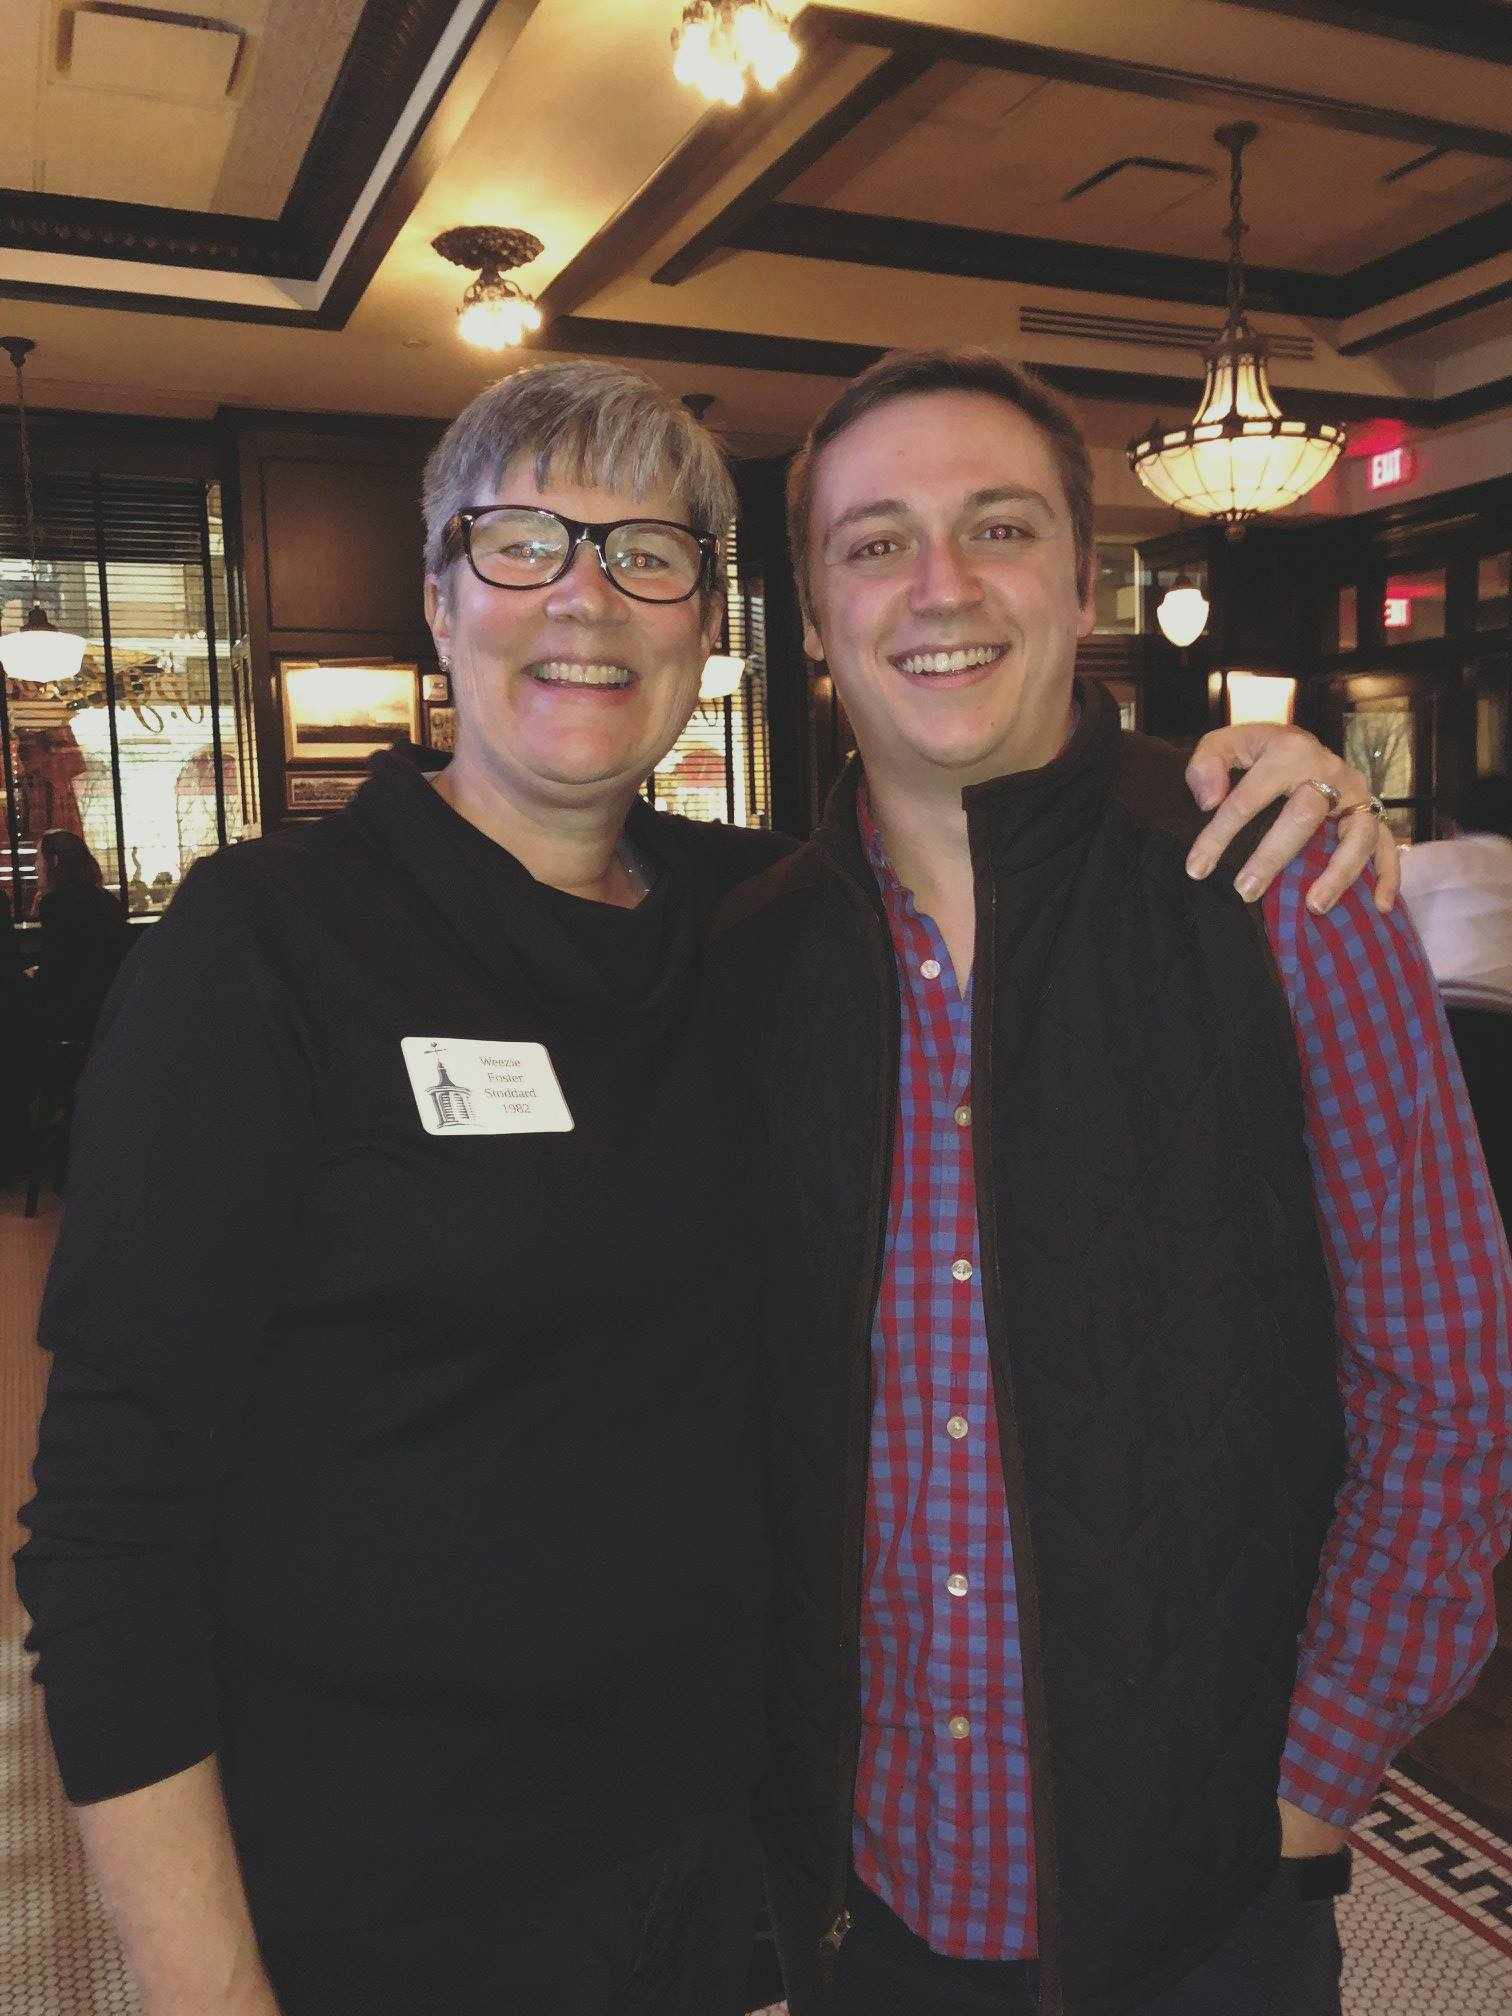 Director of Alumni Relations, Weezie Stoddard '82 shares a smile with Nick Frasco '12